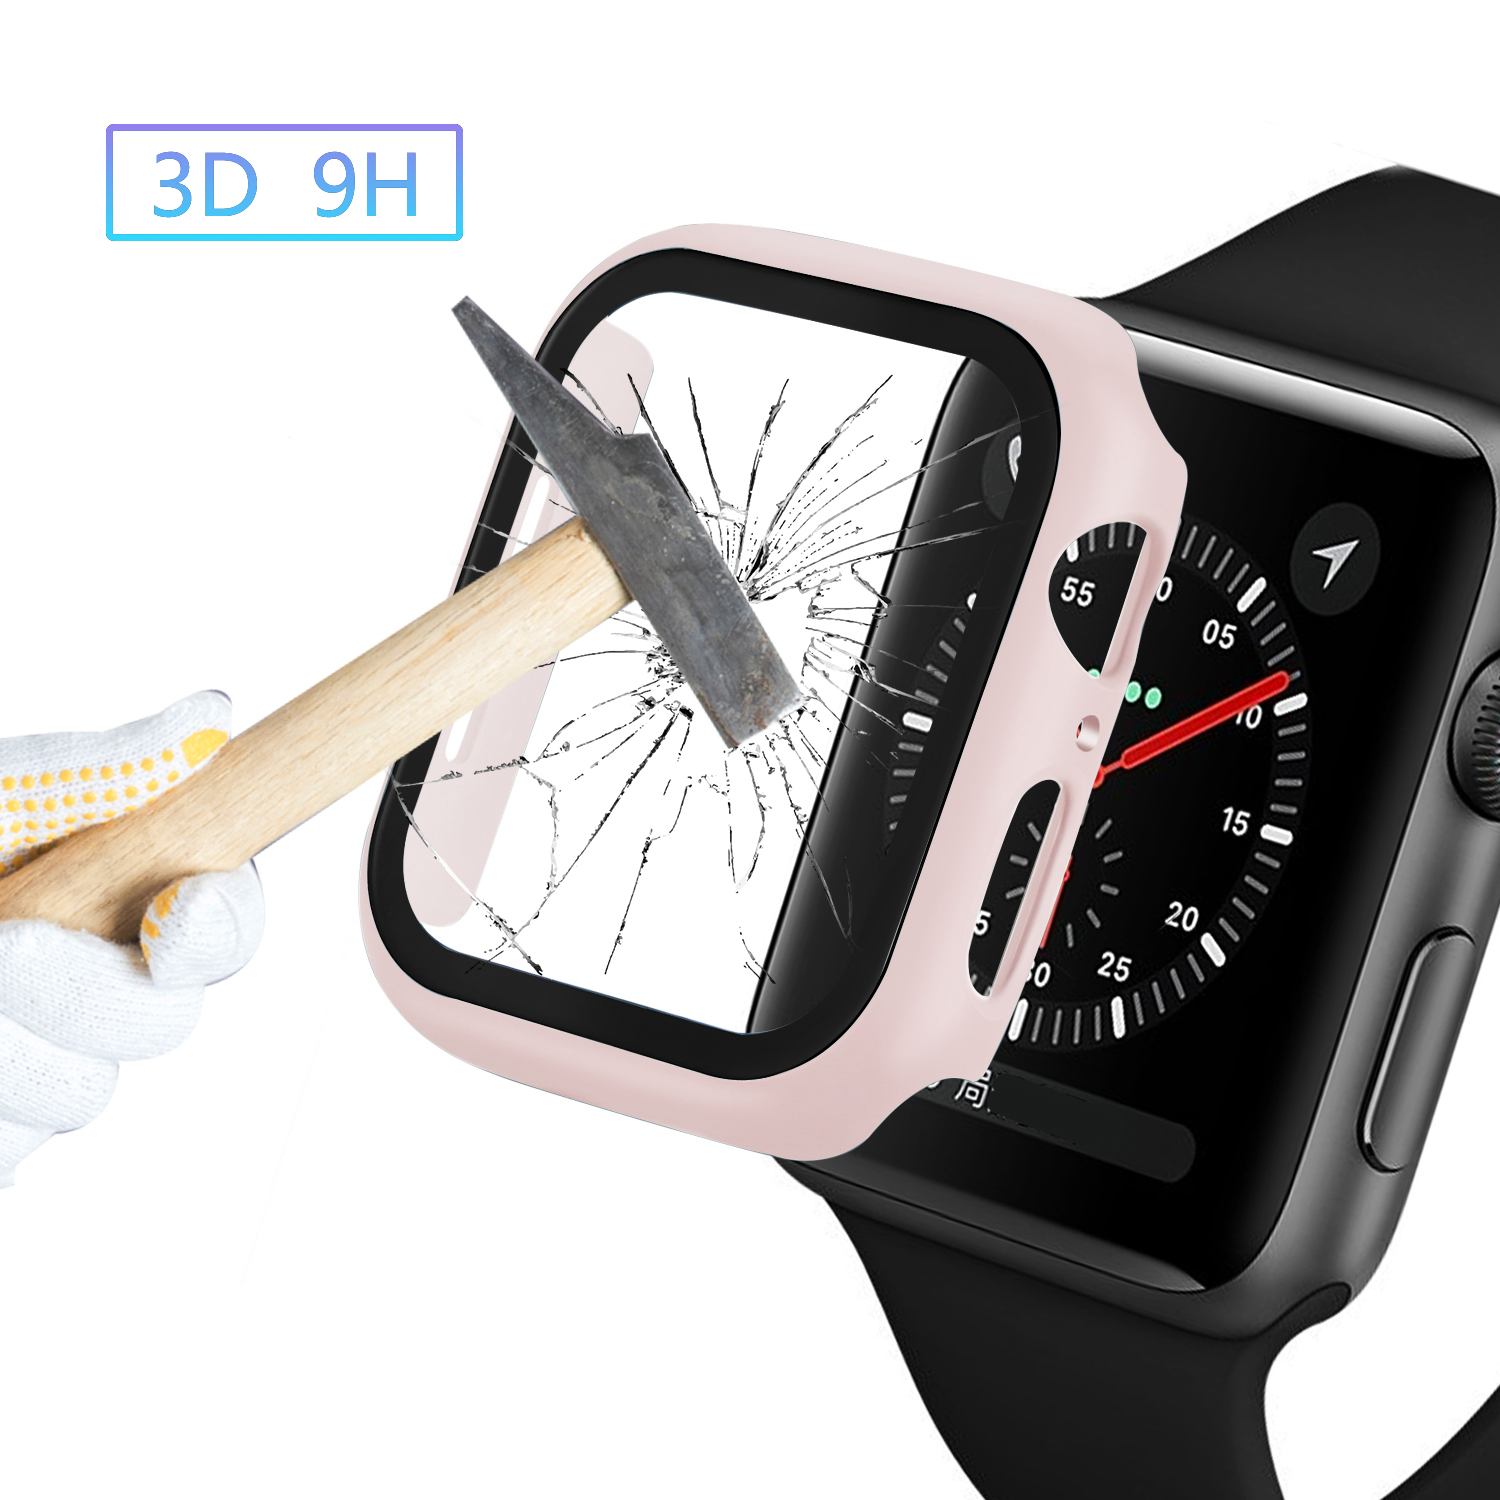 Watch Cover Case for Apple Watch 5/4 40MM/44MM PC Bumper with Glass Protector Film for iwatch Series 3/2 38 42MM  accessories 6